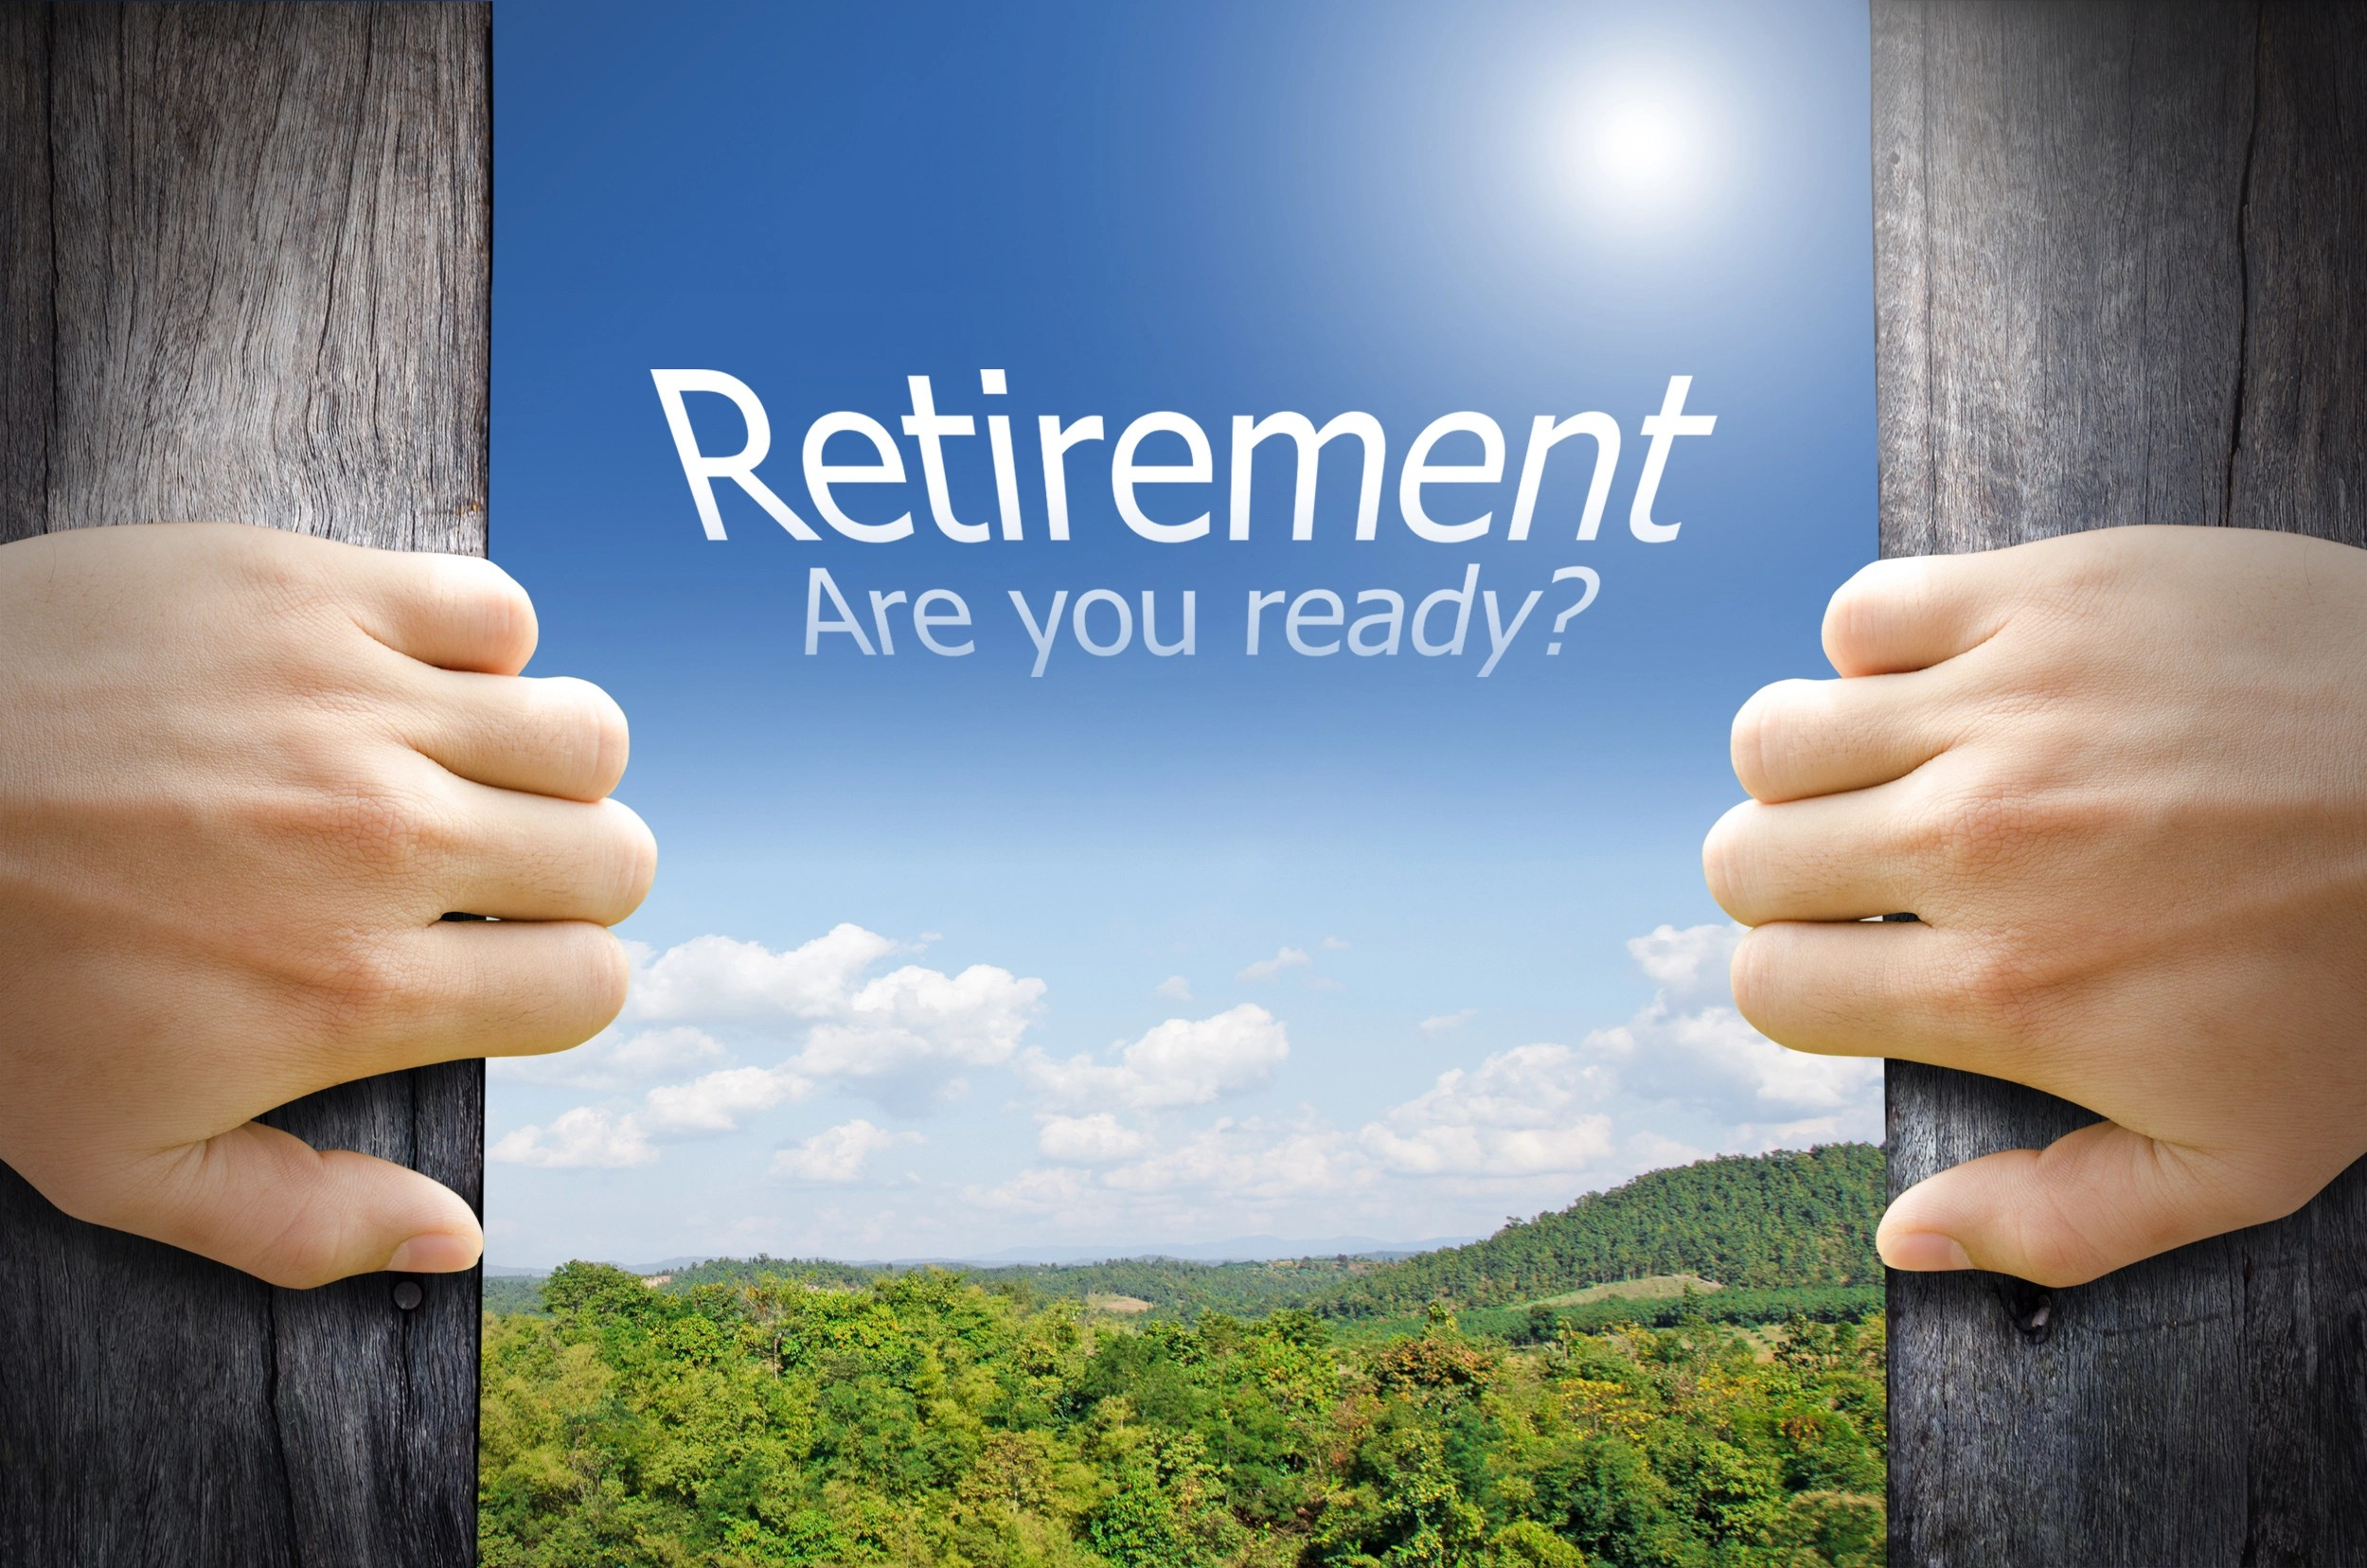 Special Event Are You Ready For Retirement